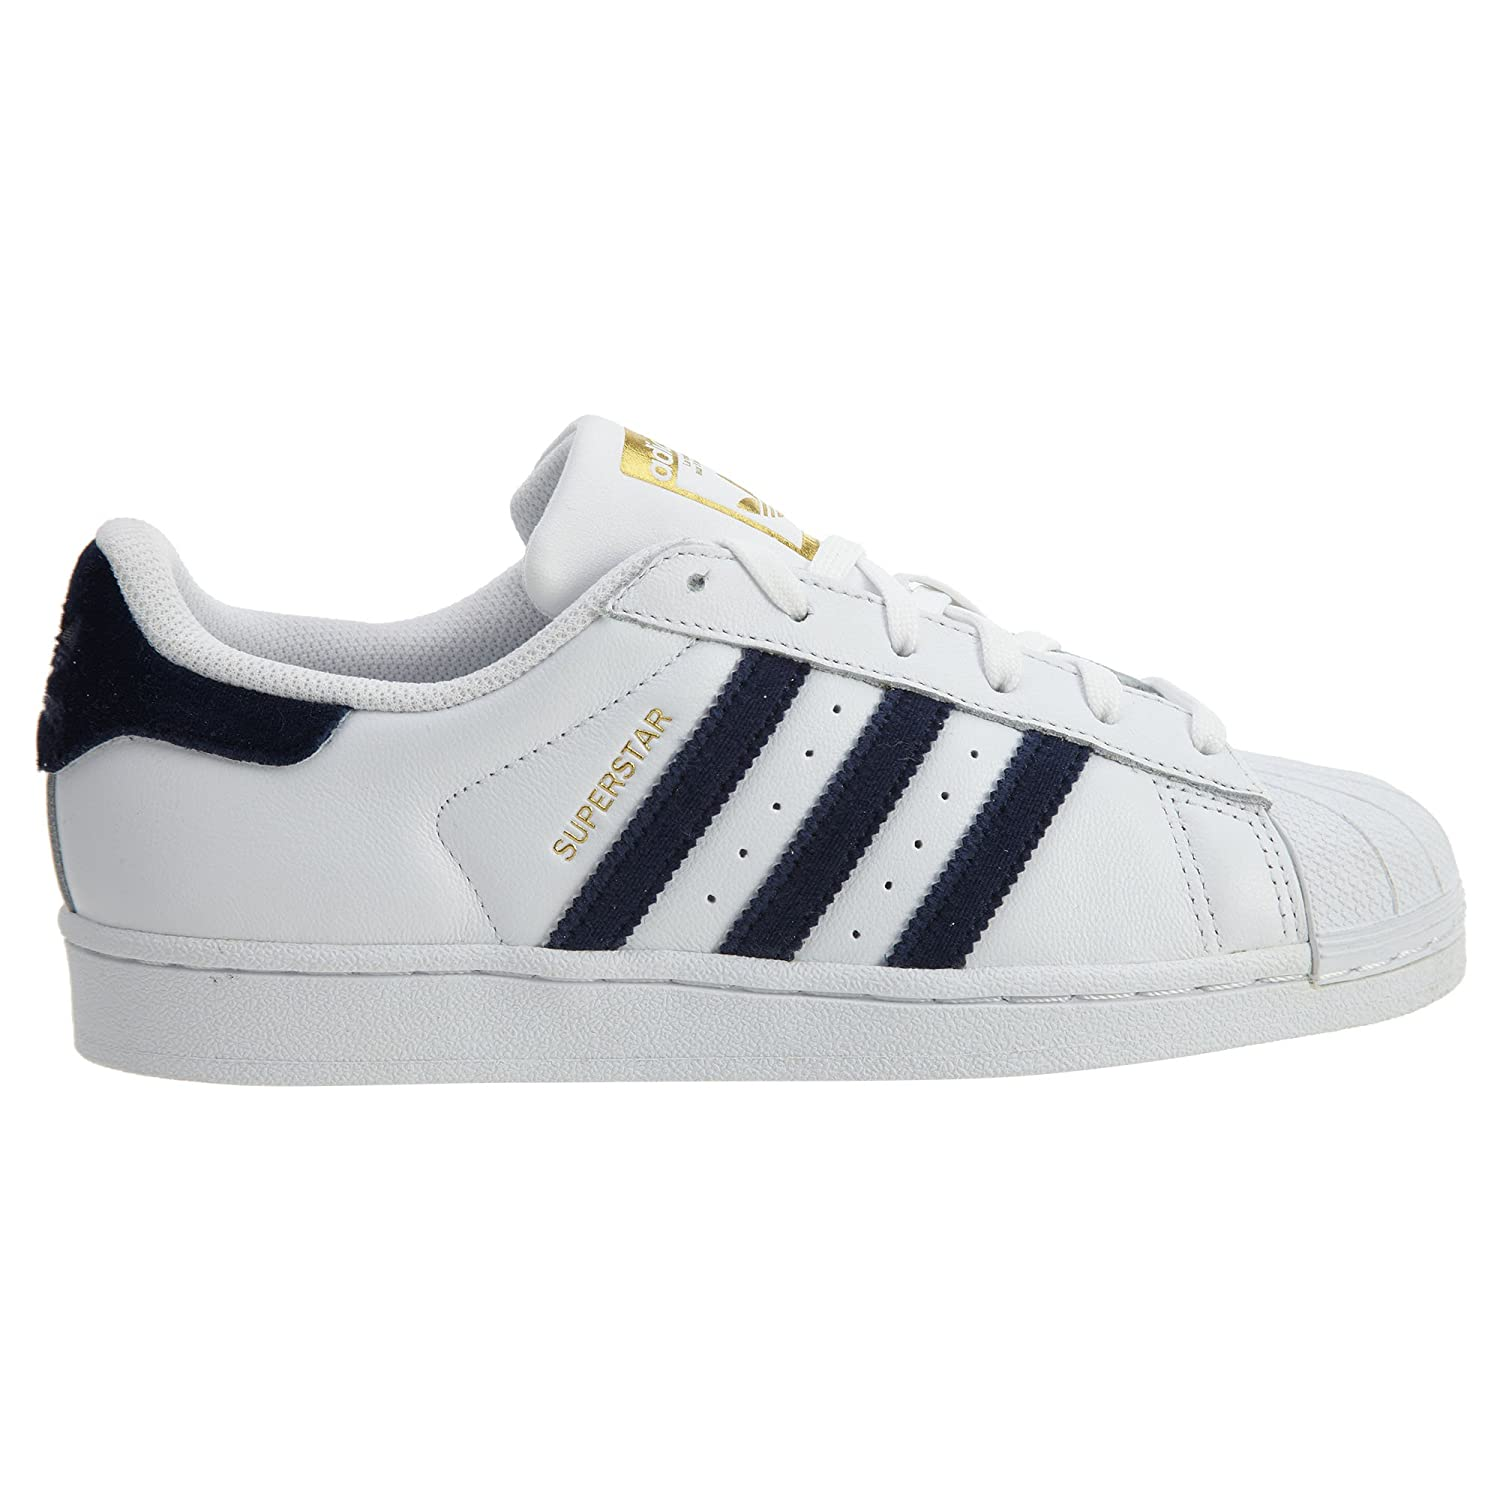 Adidas-Superstar-Women-039-s-Fashion-Casual-Sneakers-Athletic-Shoes-Originals thumbnail 26